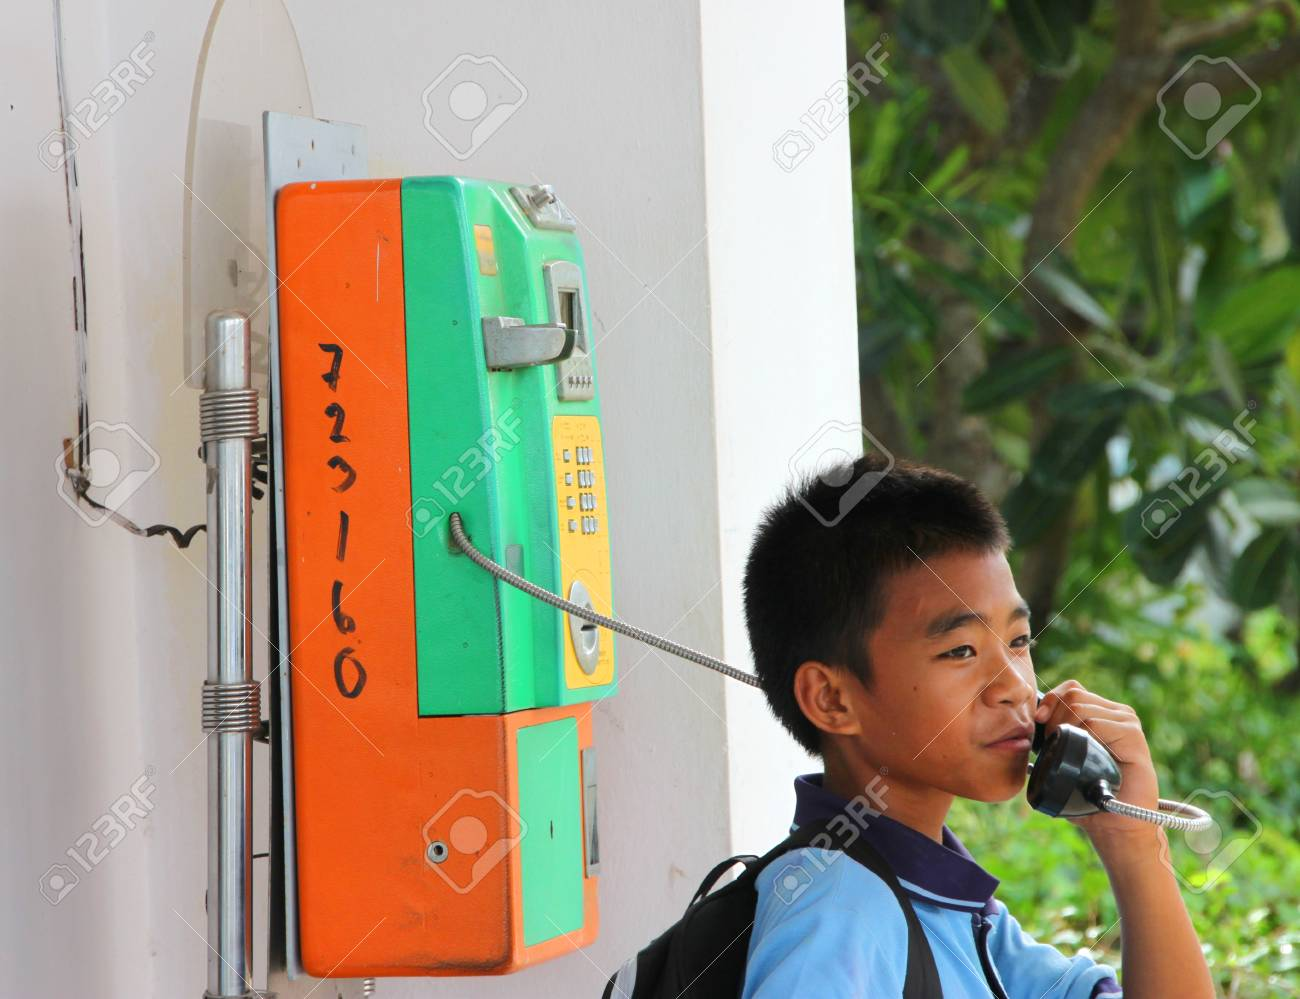 MUANG, MAHASARAKHAM - JUNE 8 : Unidentified boy is calling to somebody by telephone on June 8, 2012 at city hall of Muang, Mahasarakham, Thailand. Stock Photo - 17063343